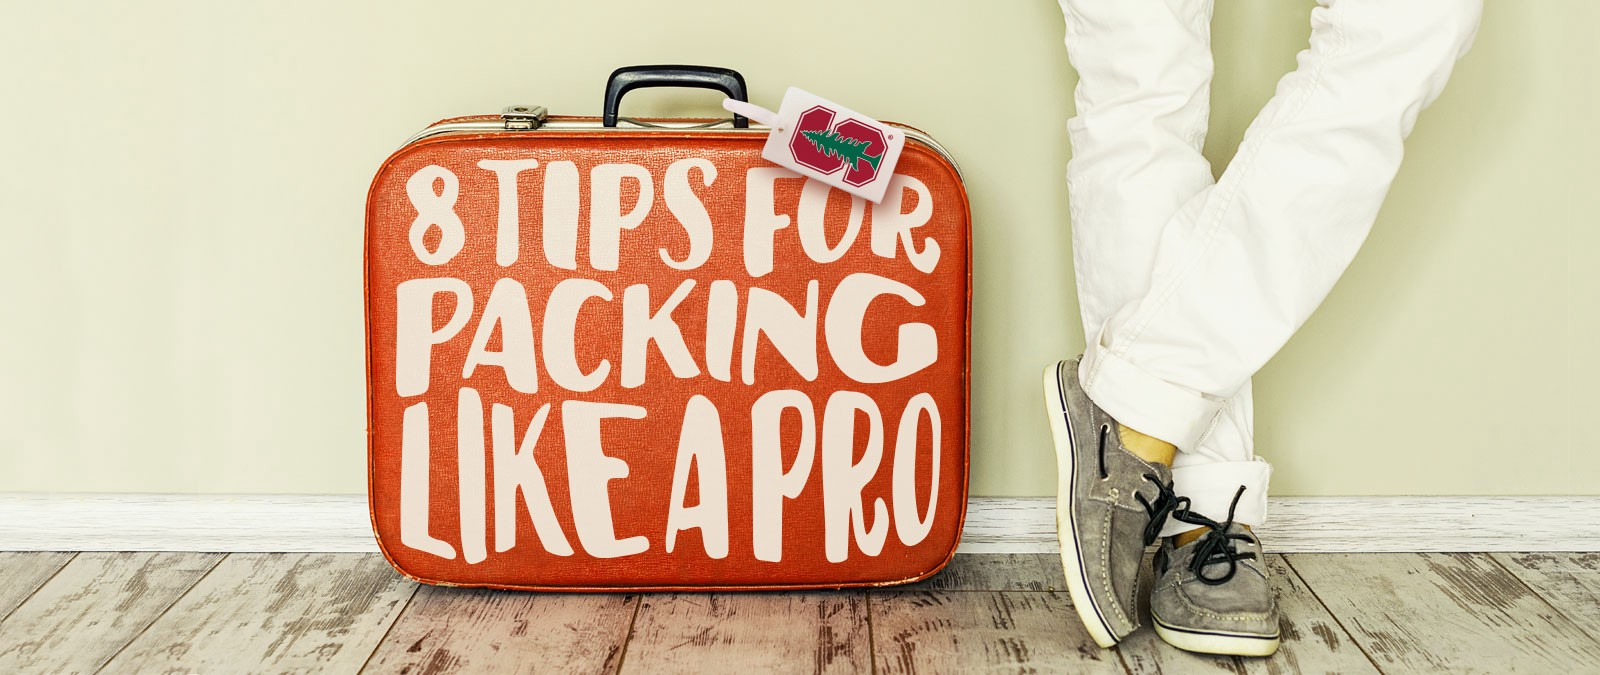 8 Tips for Packing Like a Pro